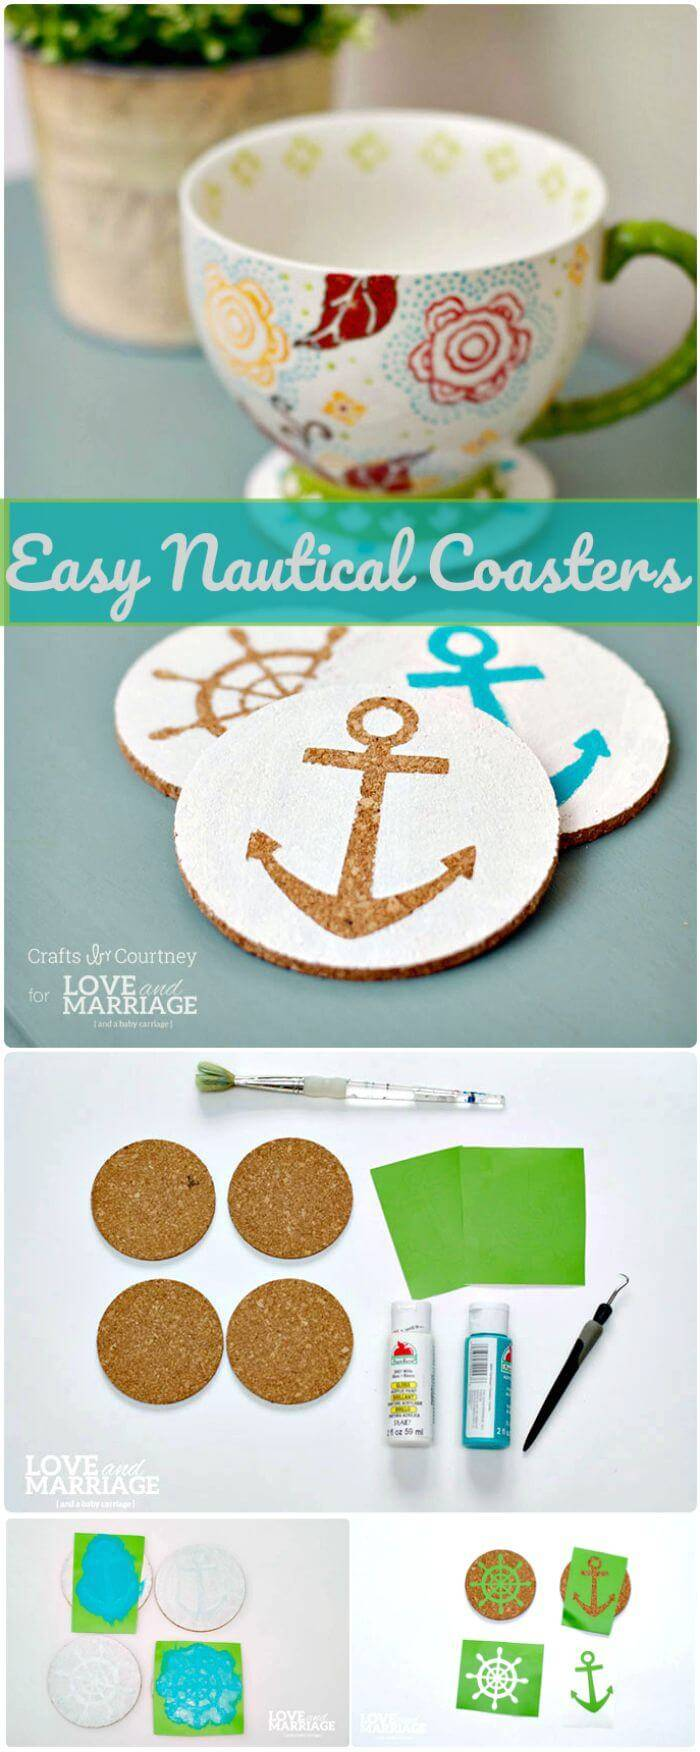 Easy Nautical Coasters